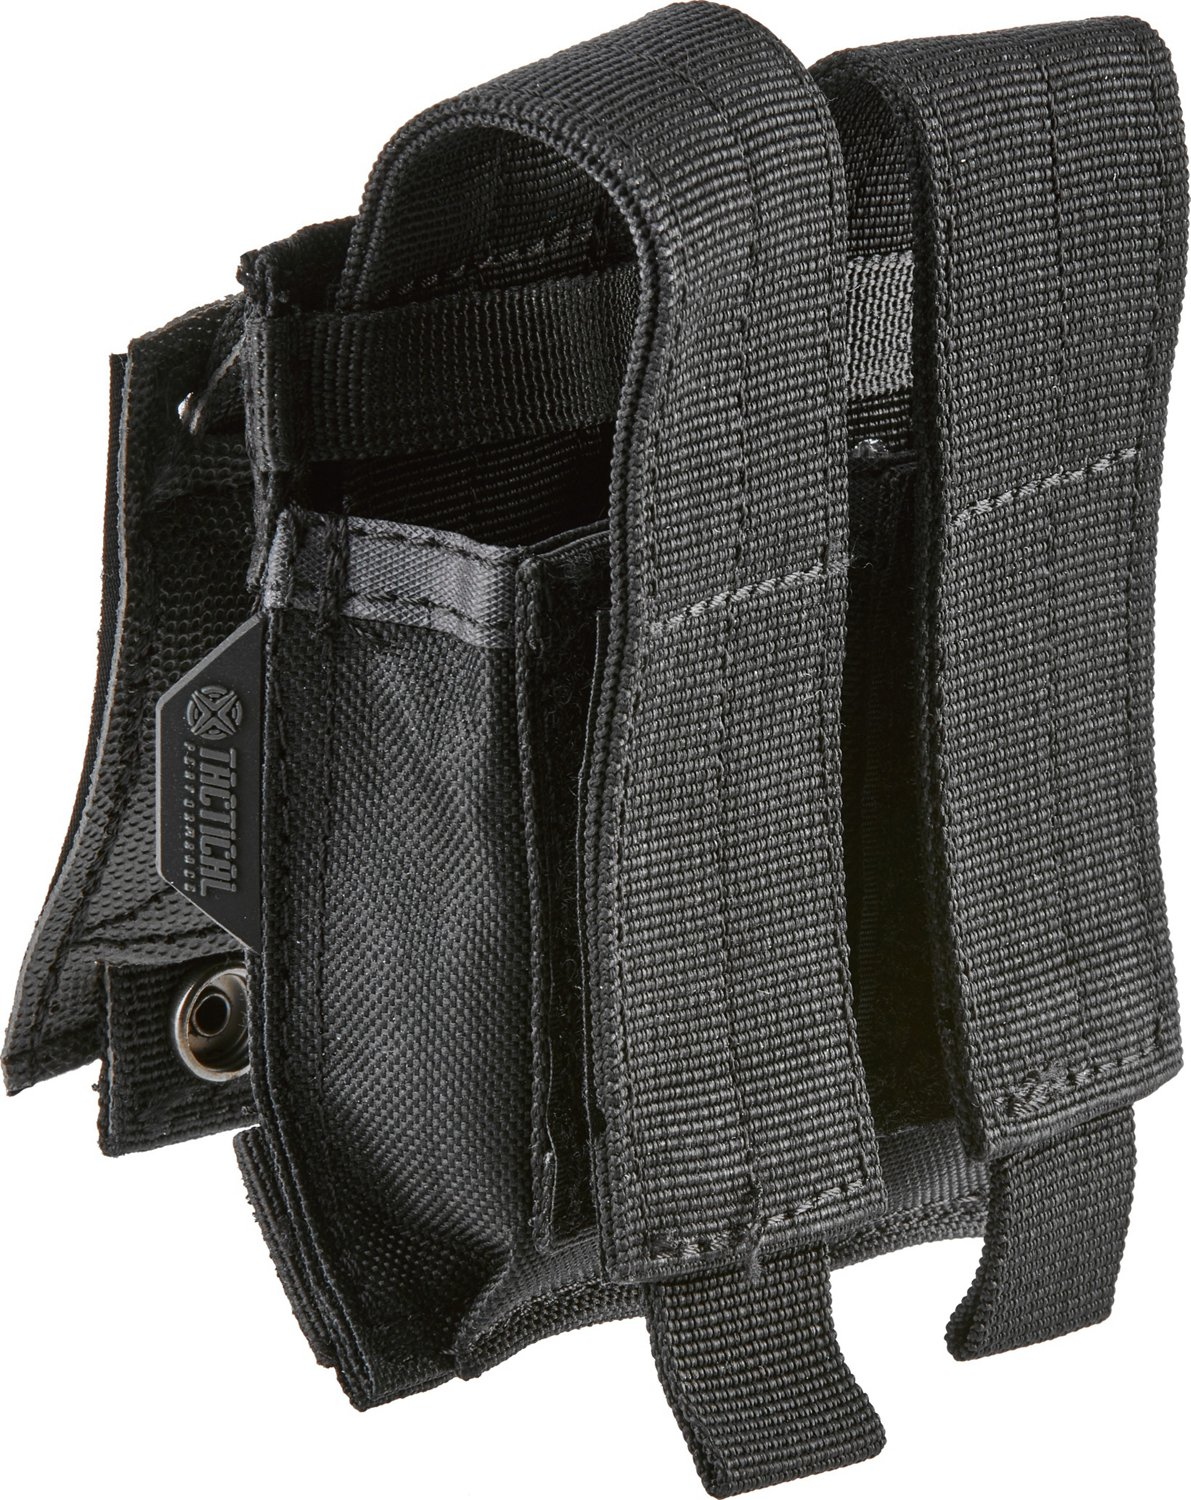 Tactical Performance™ Double Pistol Mag Pouch - view number 1